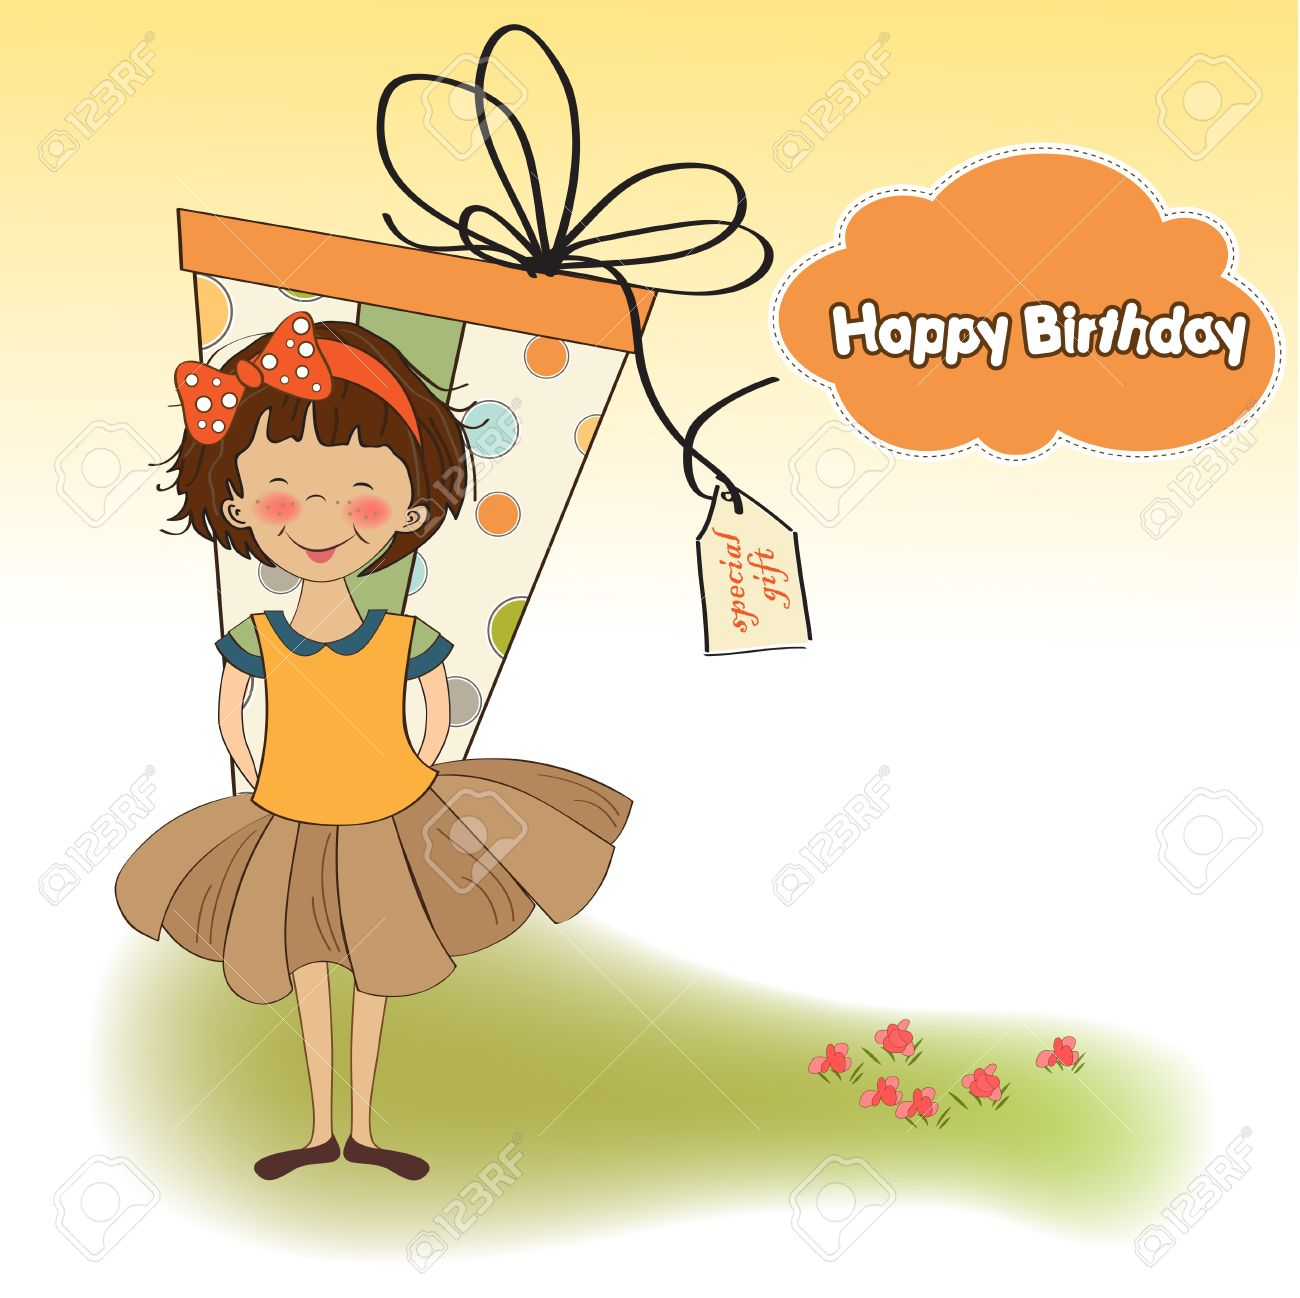 Cute Little Girl Hidden Behind Boxes Of Gifts Happy Birthday – Happy Birthday Card for Little Girl